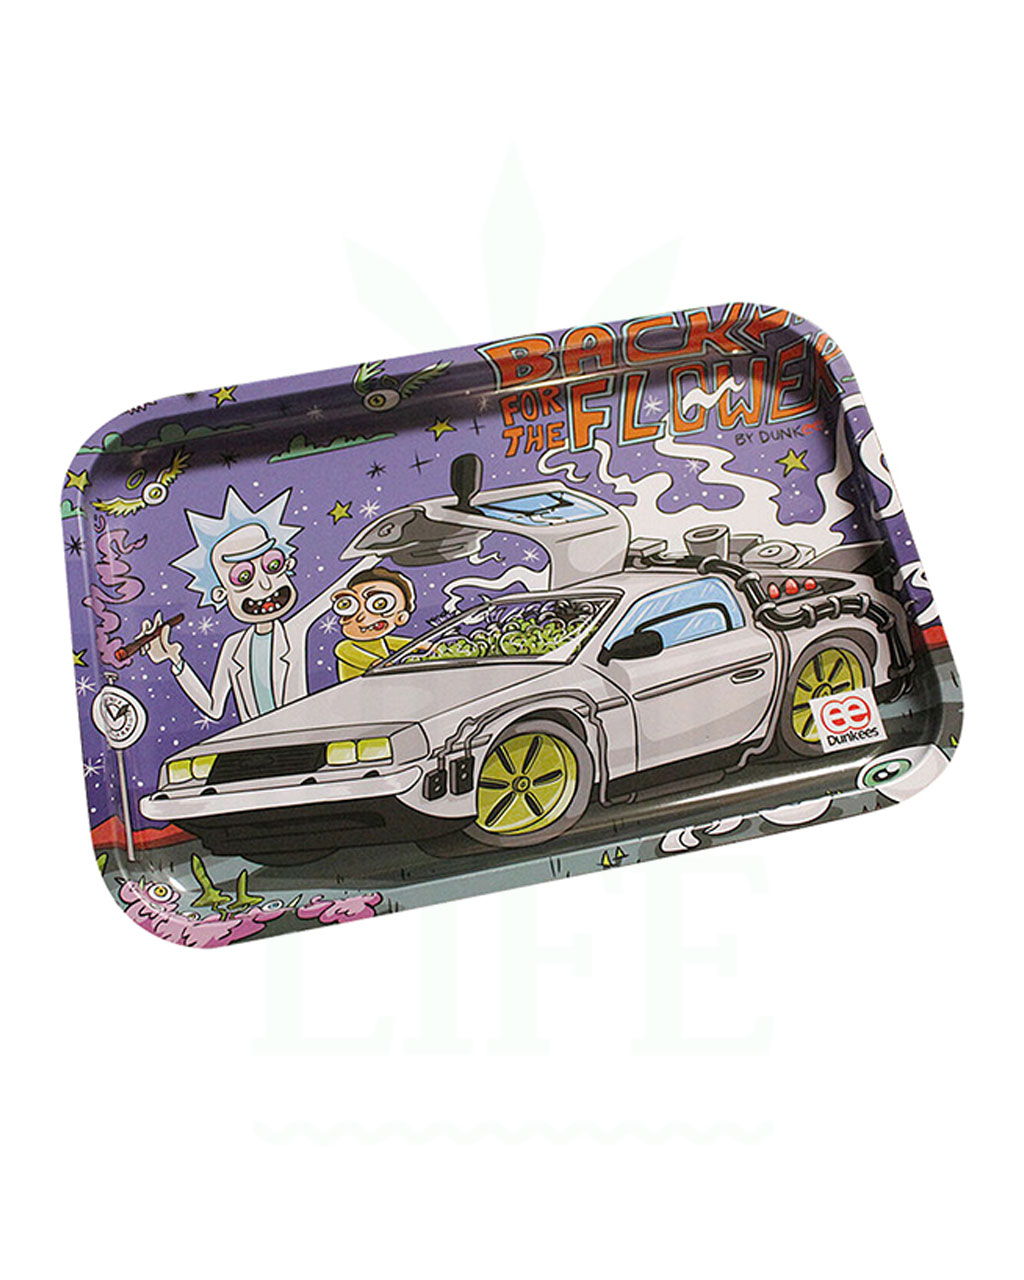 aus Metall DUNKEES Rolling Tray | 'Back to the Flower'